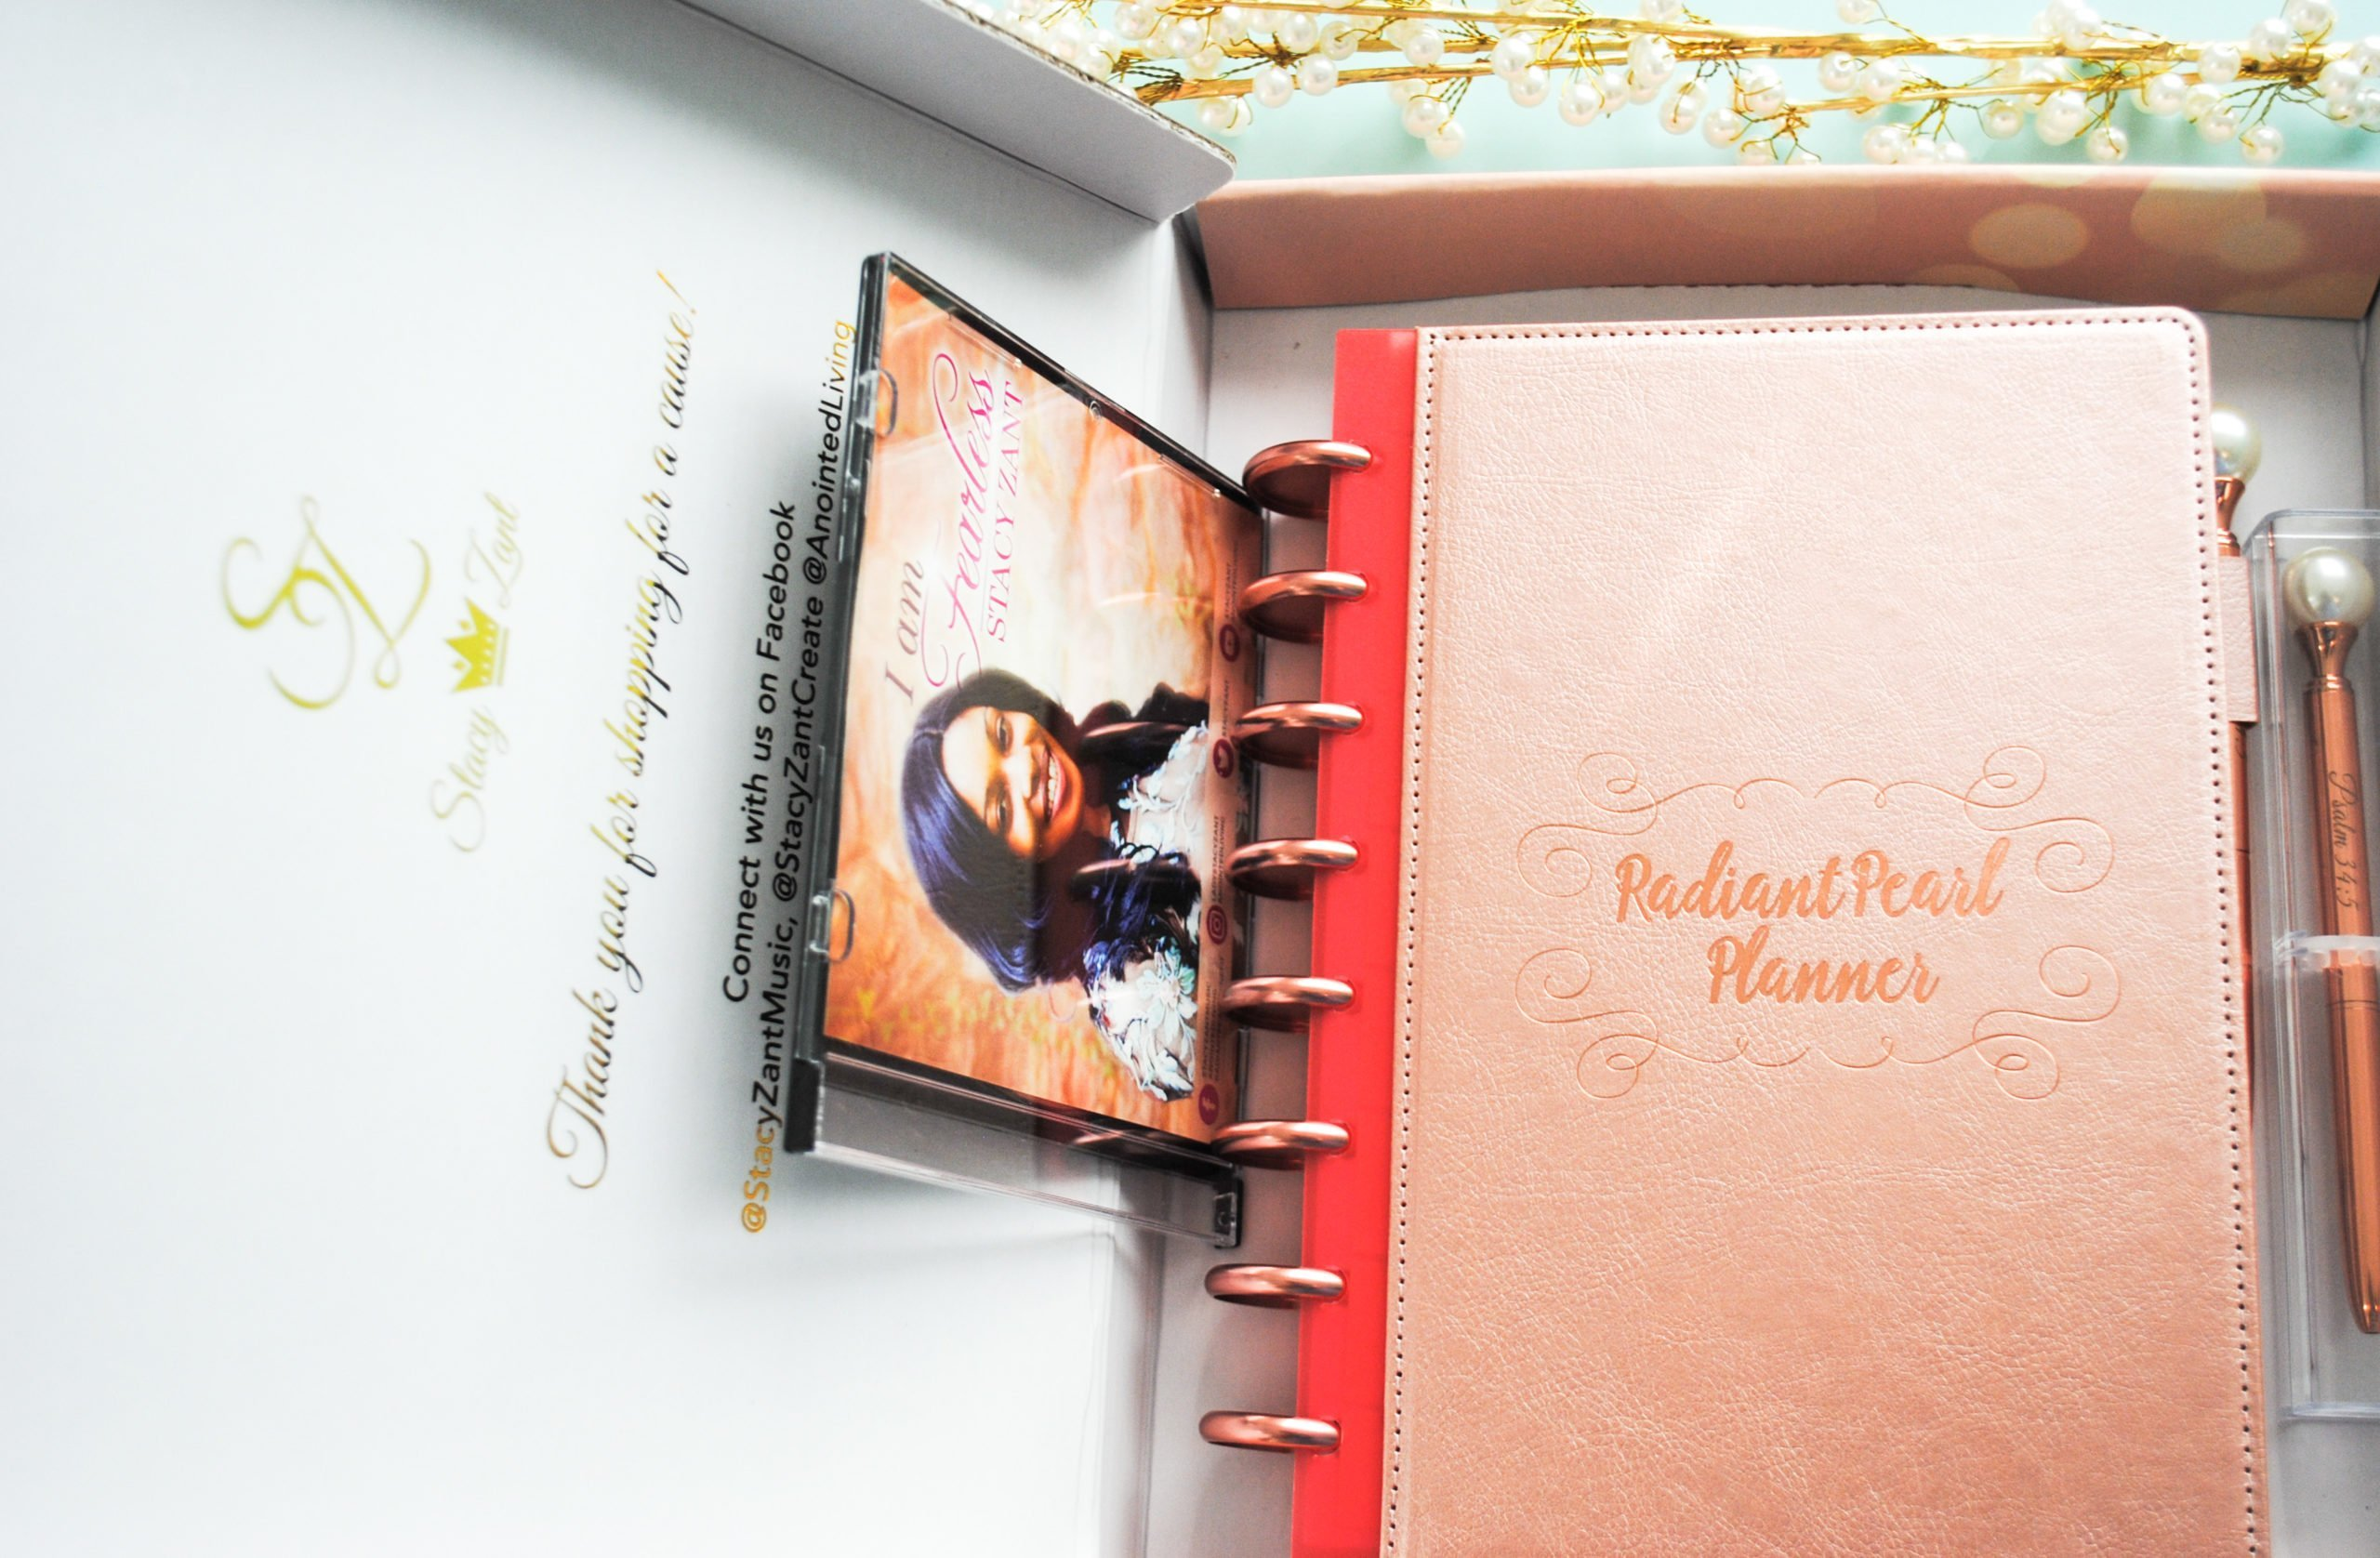 Radiant Pearl Planner Disc-bound planner package 2